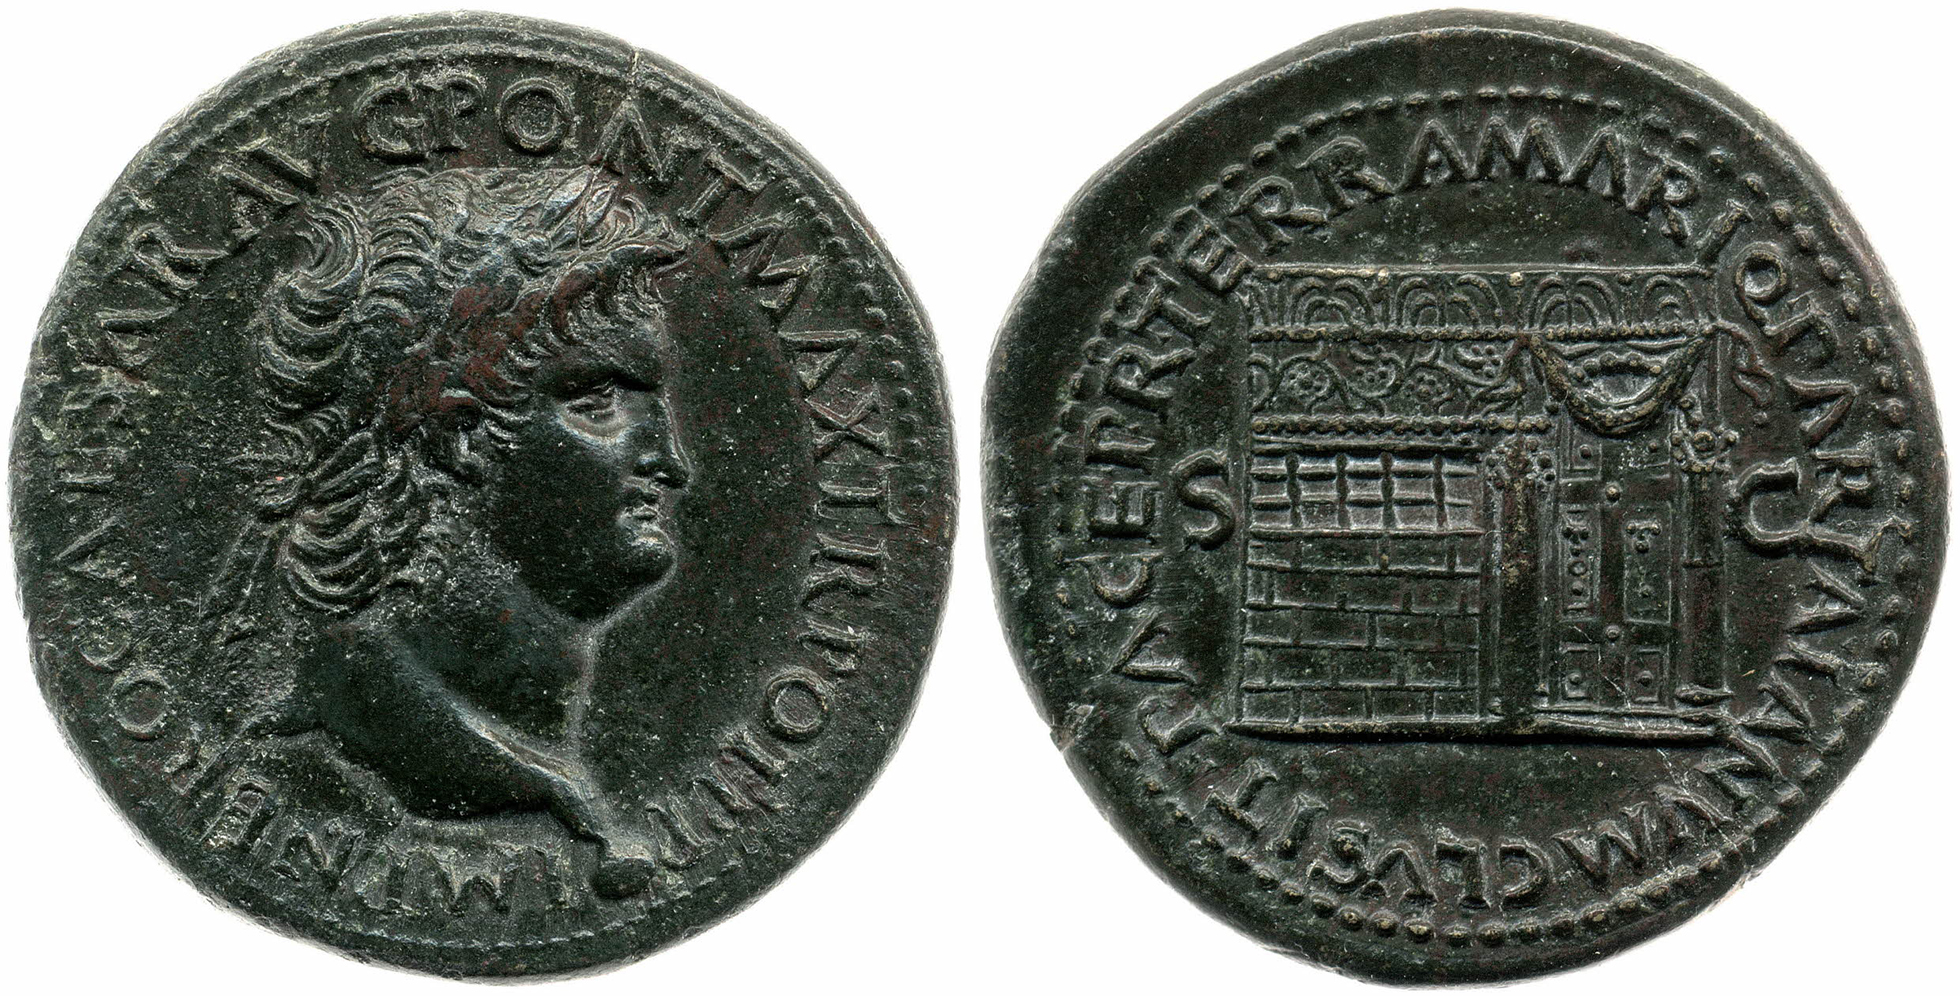 A dark coloured coin, showing a bust of Nero facing to the right on the obverse, and the fide of a temple with a window and double doors on the reverse.